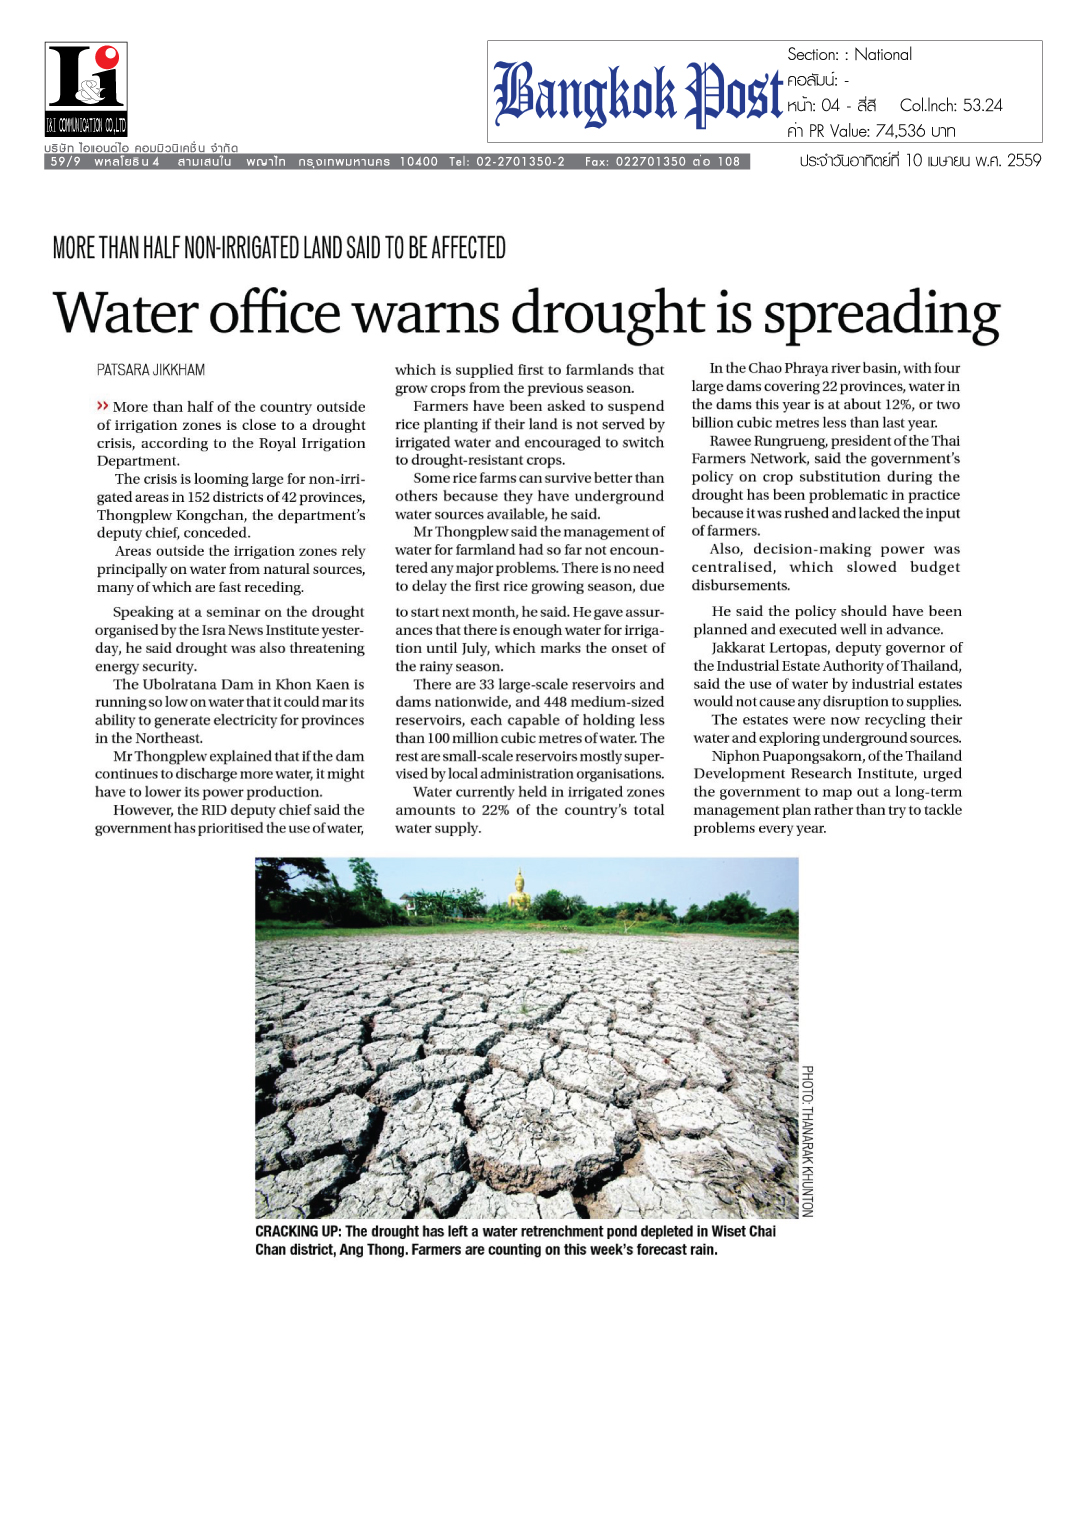 Bangkok Post 23-12-59  MORE THAN HALF NON-IRRIGATED LAND SAID TO BE AFFECTED Water office warns drought is spreading